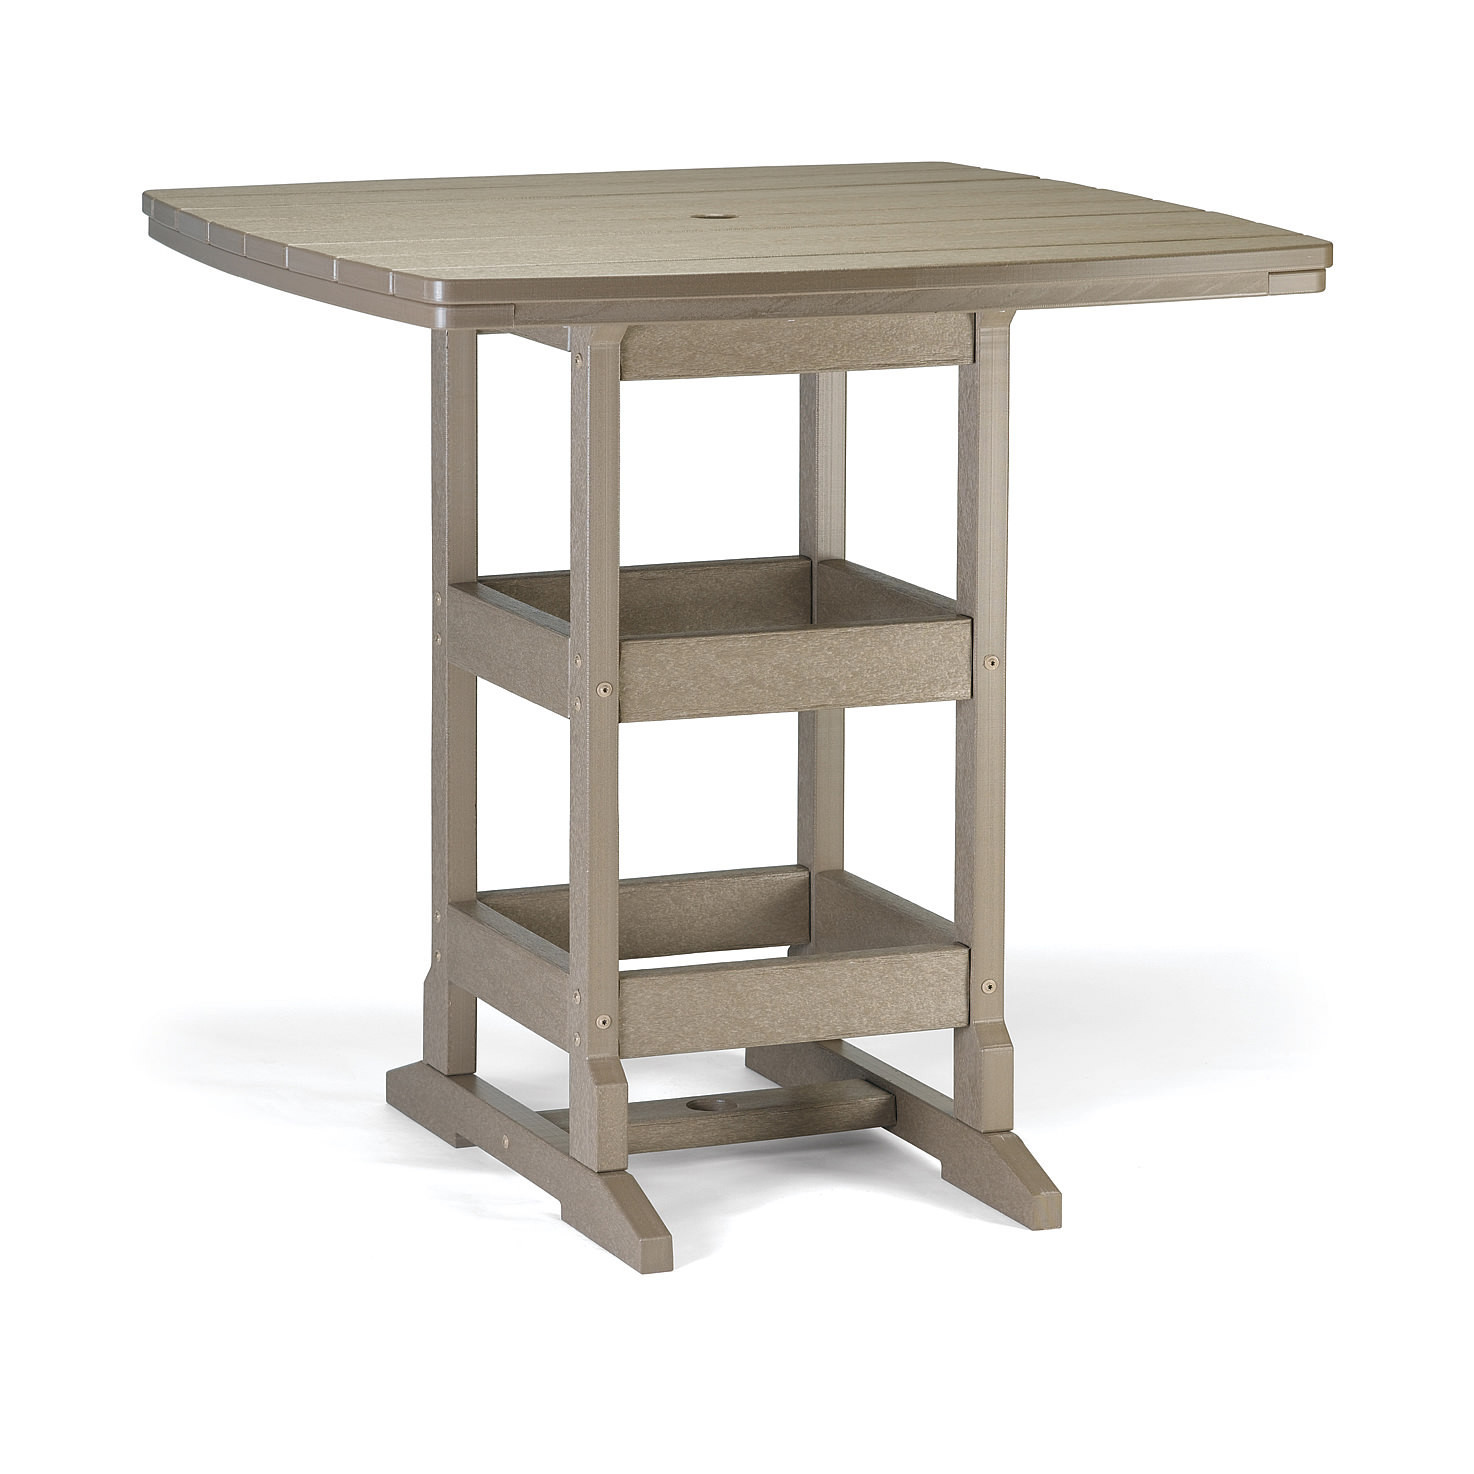 Breezesta™ 42 x 42 Inch Square Counter Table